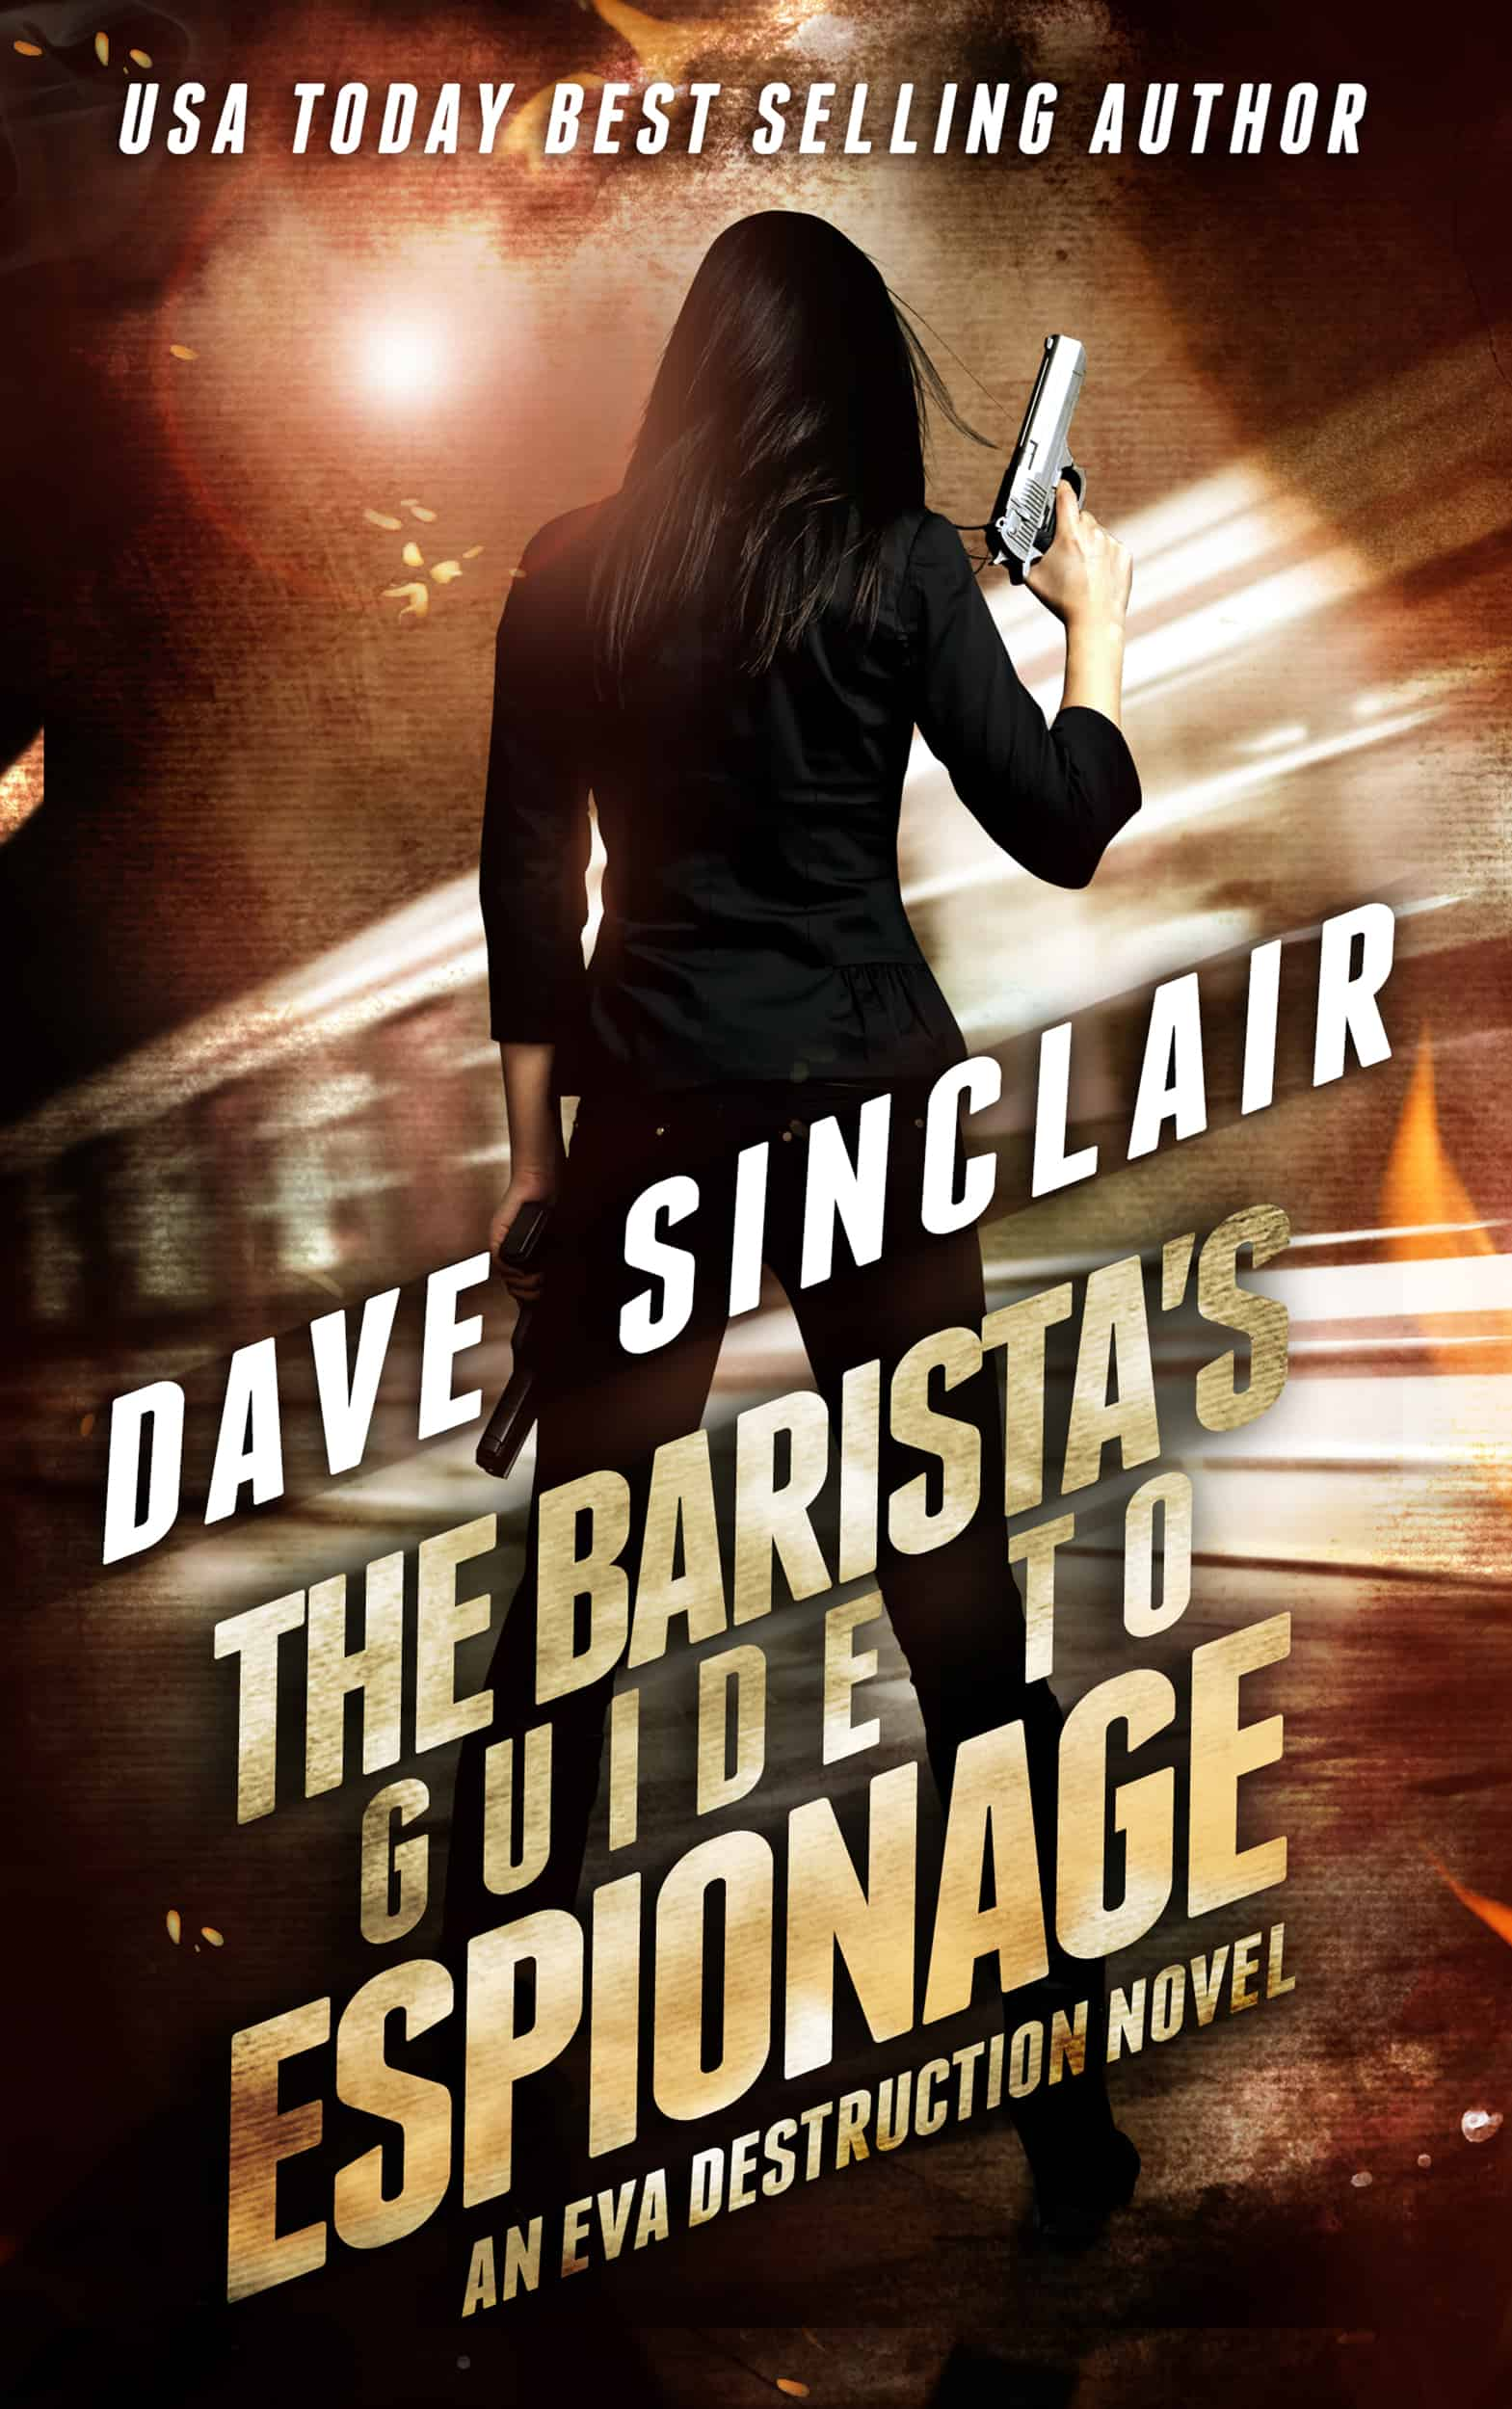 The Barista's Guide to Espionage (Eva Destruction #1)